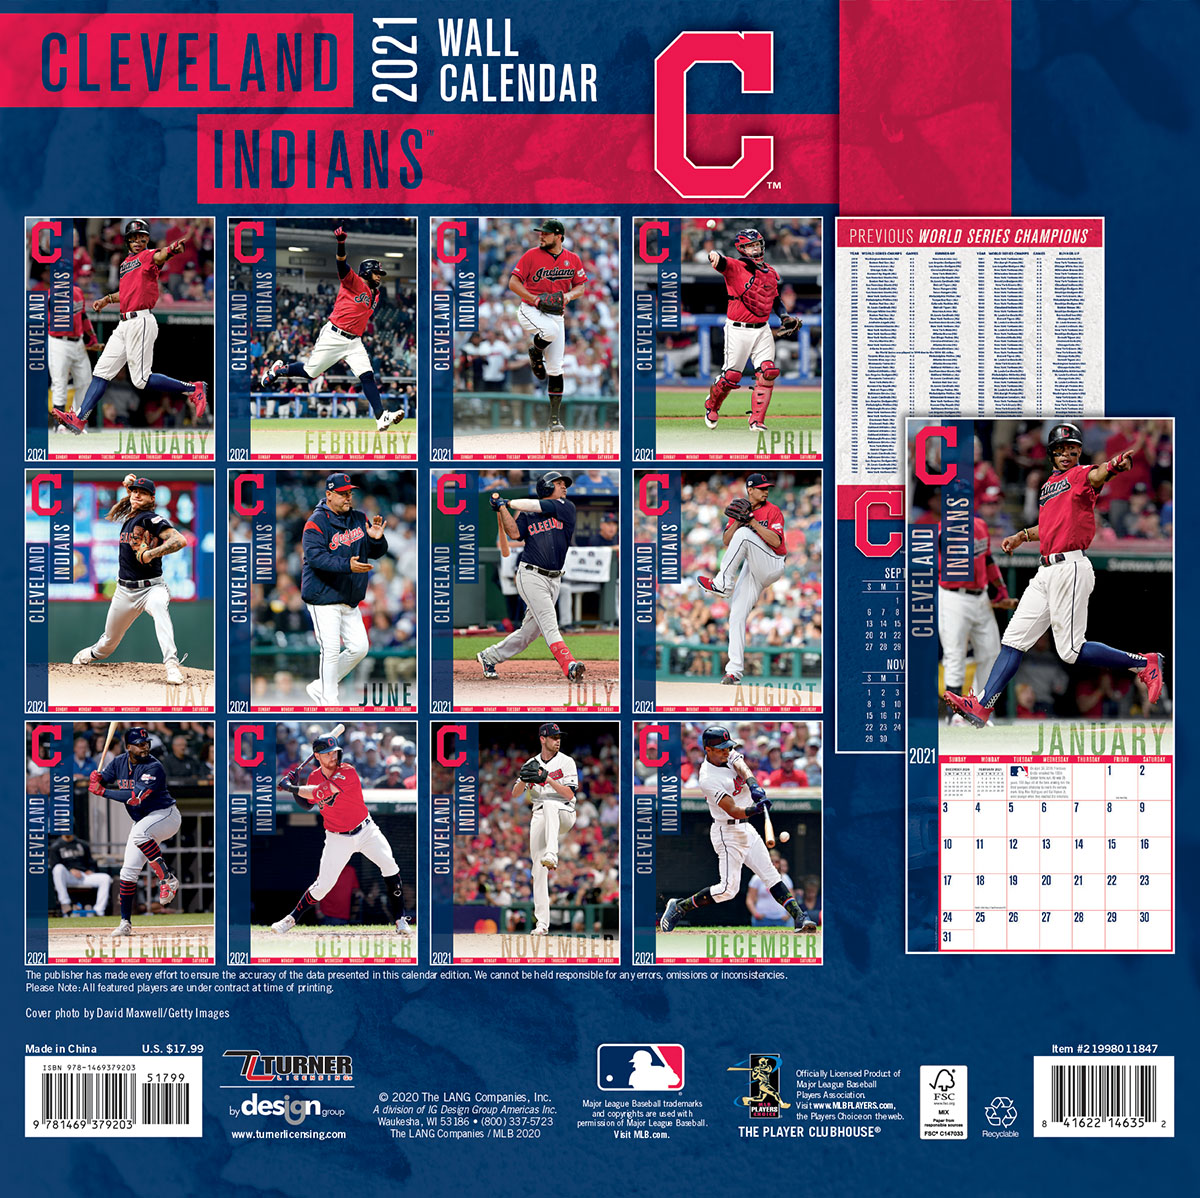 Cleveland Indians 2019 Mini Wall Calendar - Buy at KHC Sports